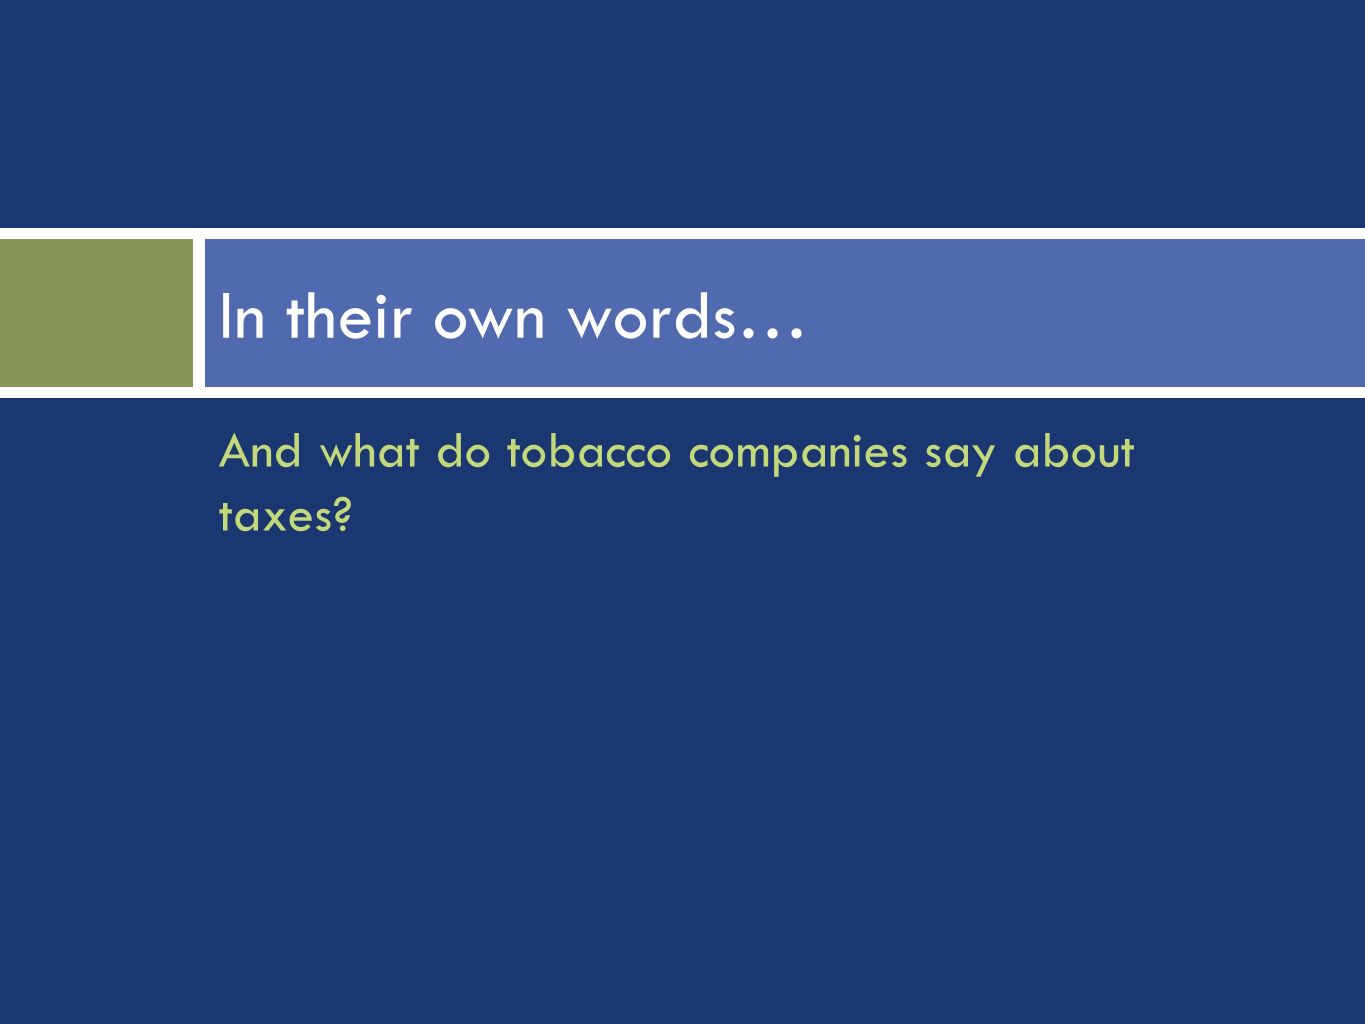 And what do tobacco companies say about taxes In their own words…